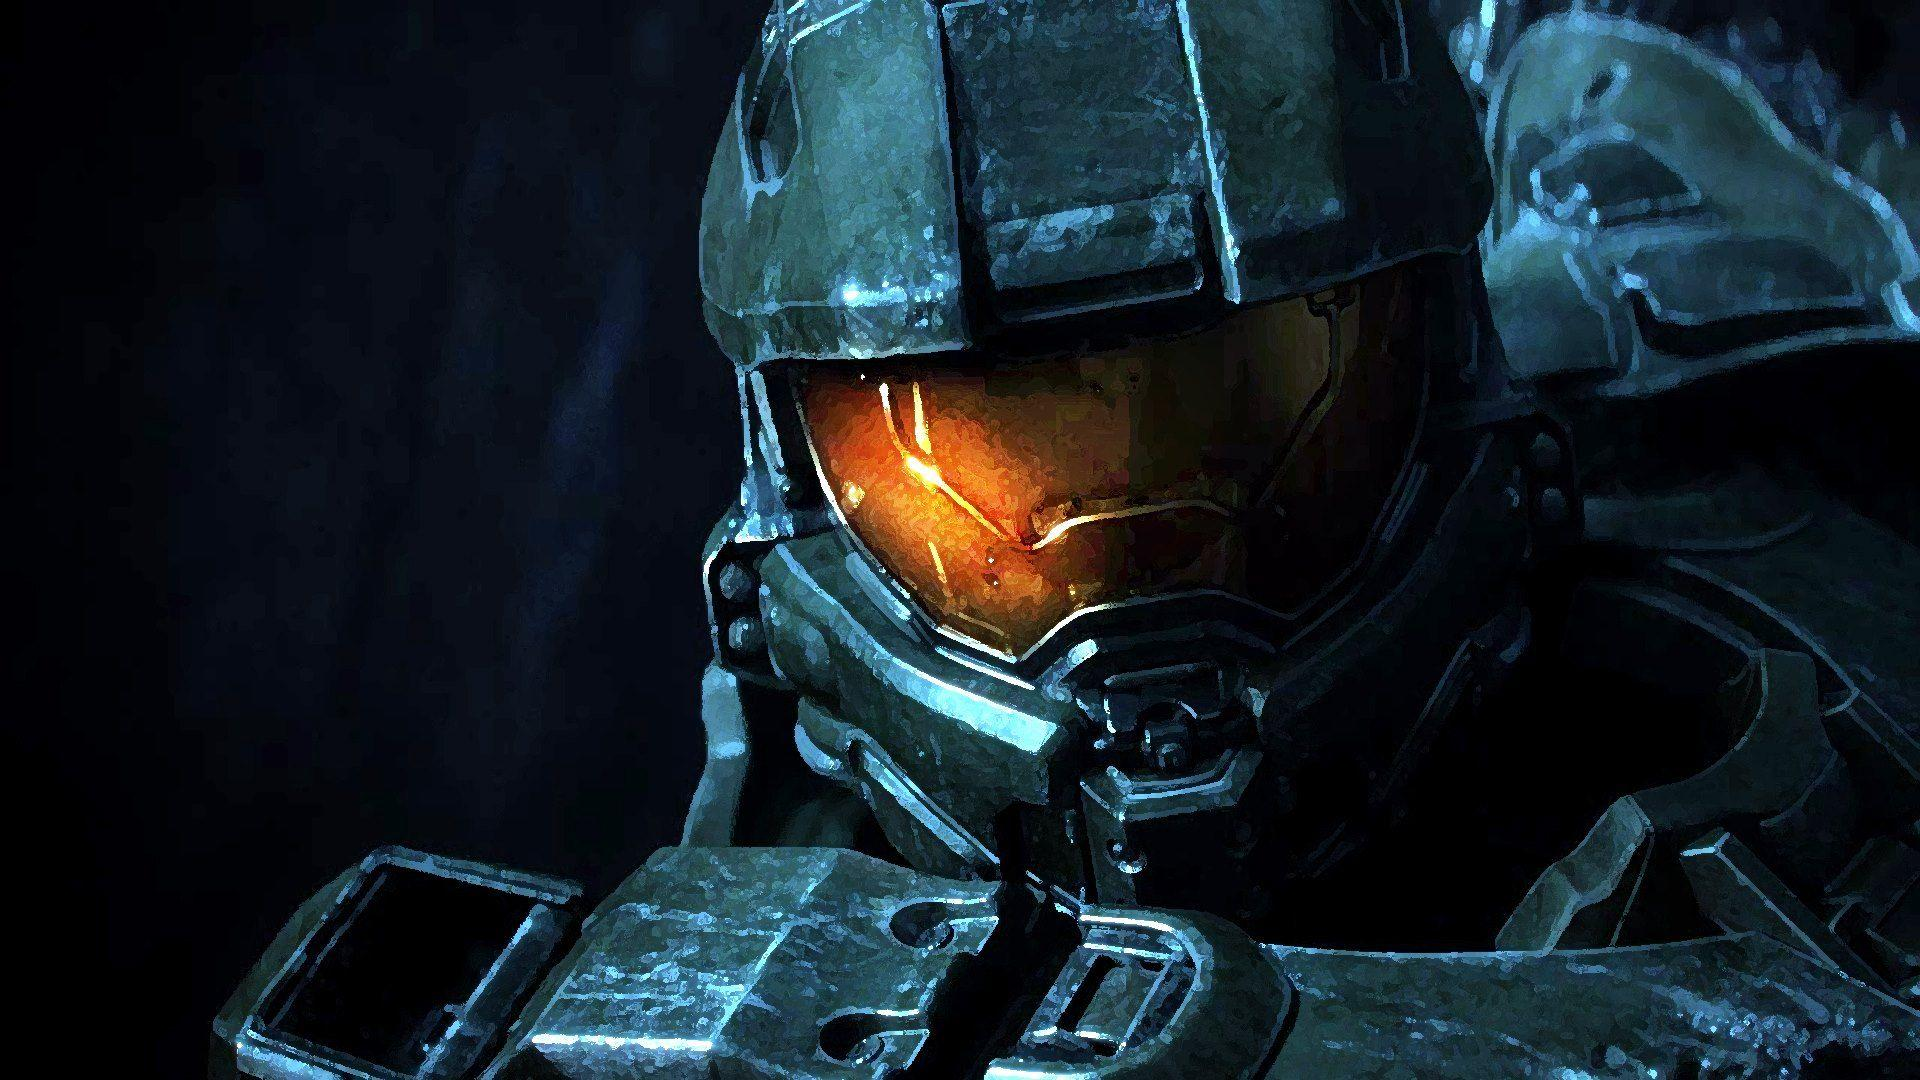 Halo Hd Wallpapers 1920x1080 Wallpaper Cave